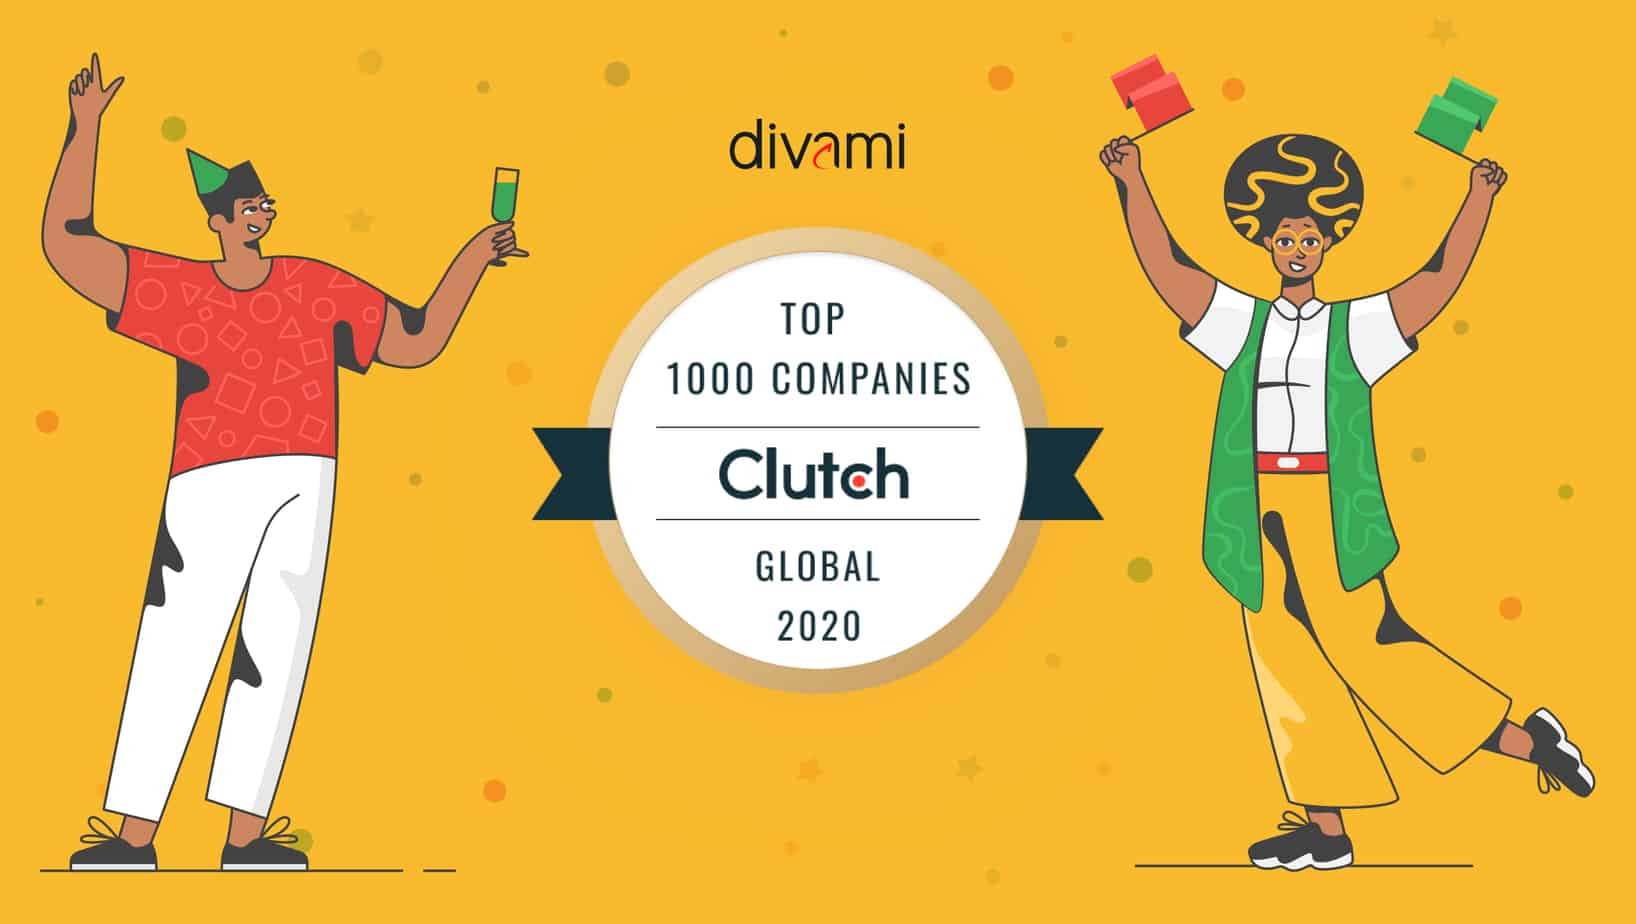 Divami Design Labs Joins The 2020 Clutch 1000